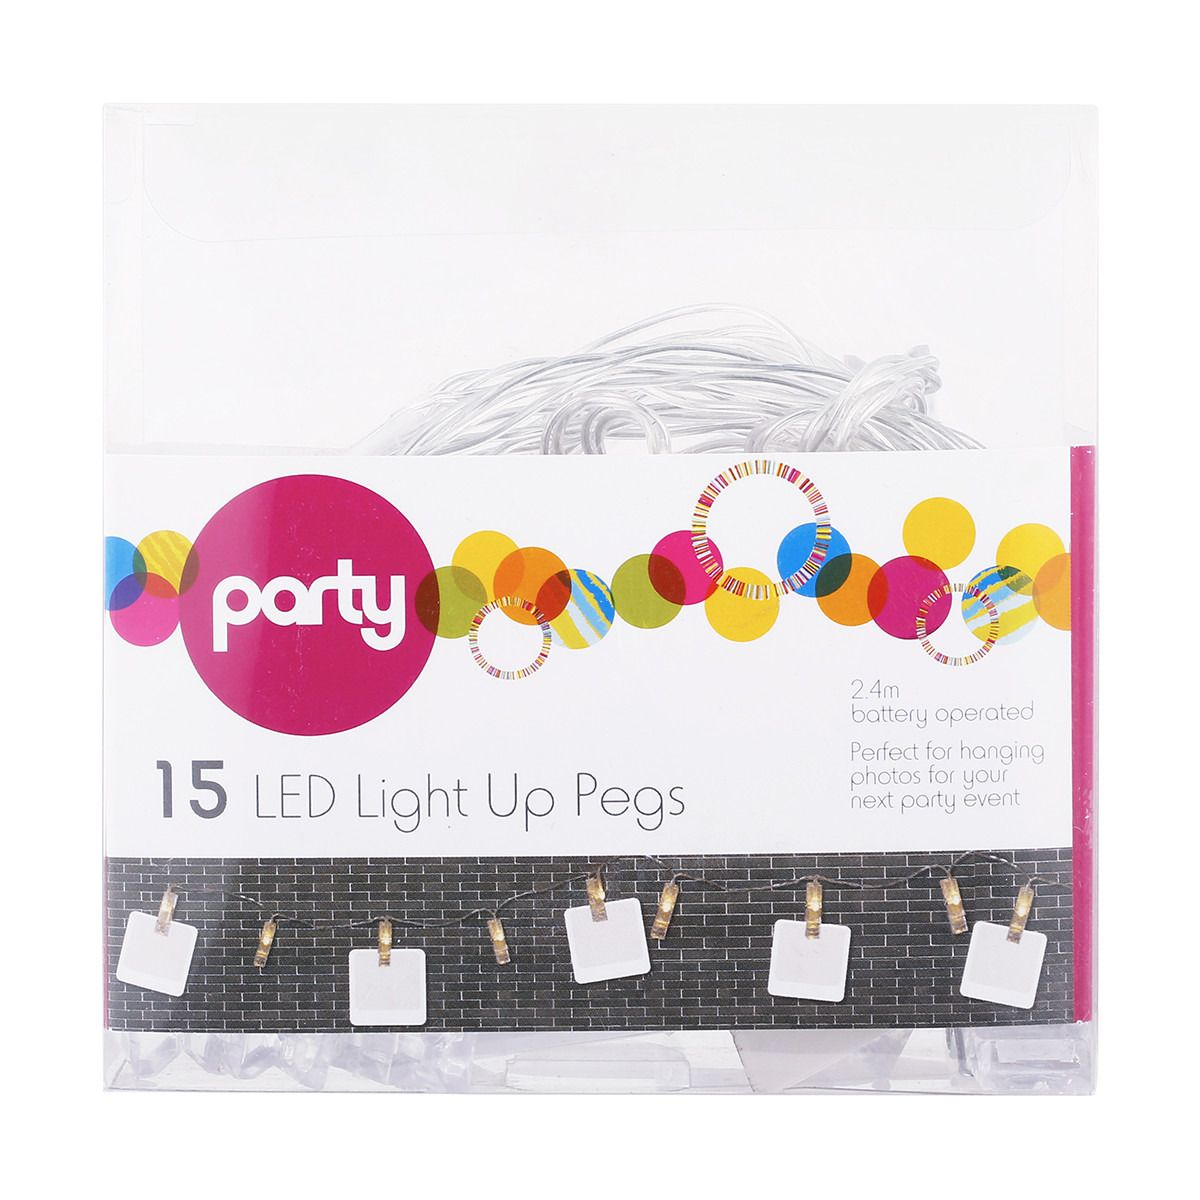 15 Pack LED Light Up Pegs Kmart Balloons and more